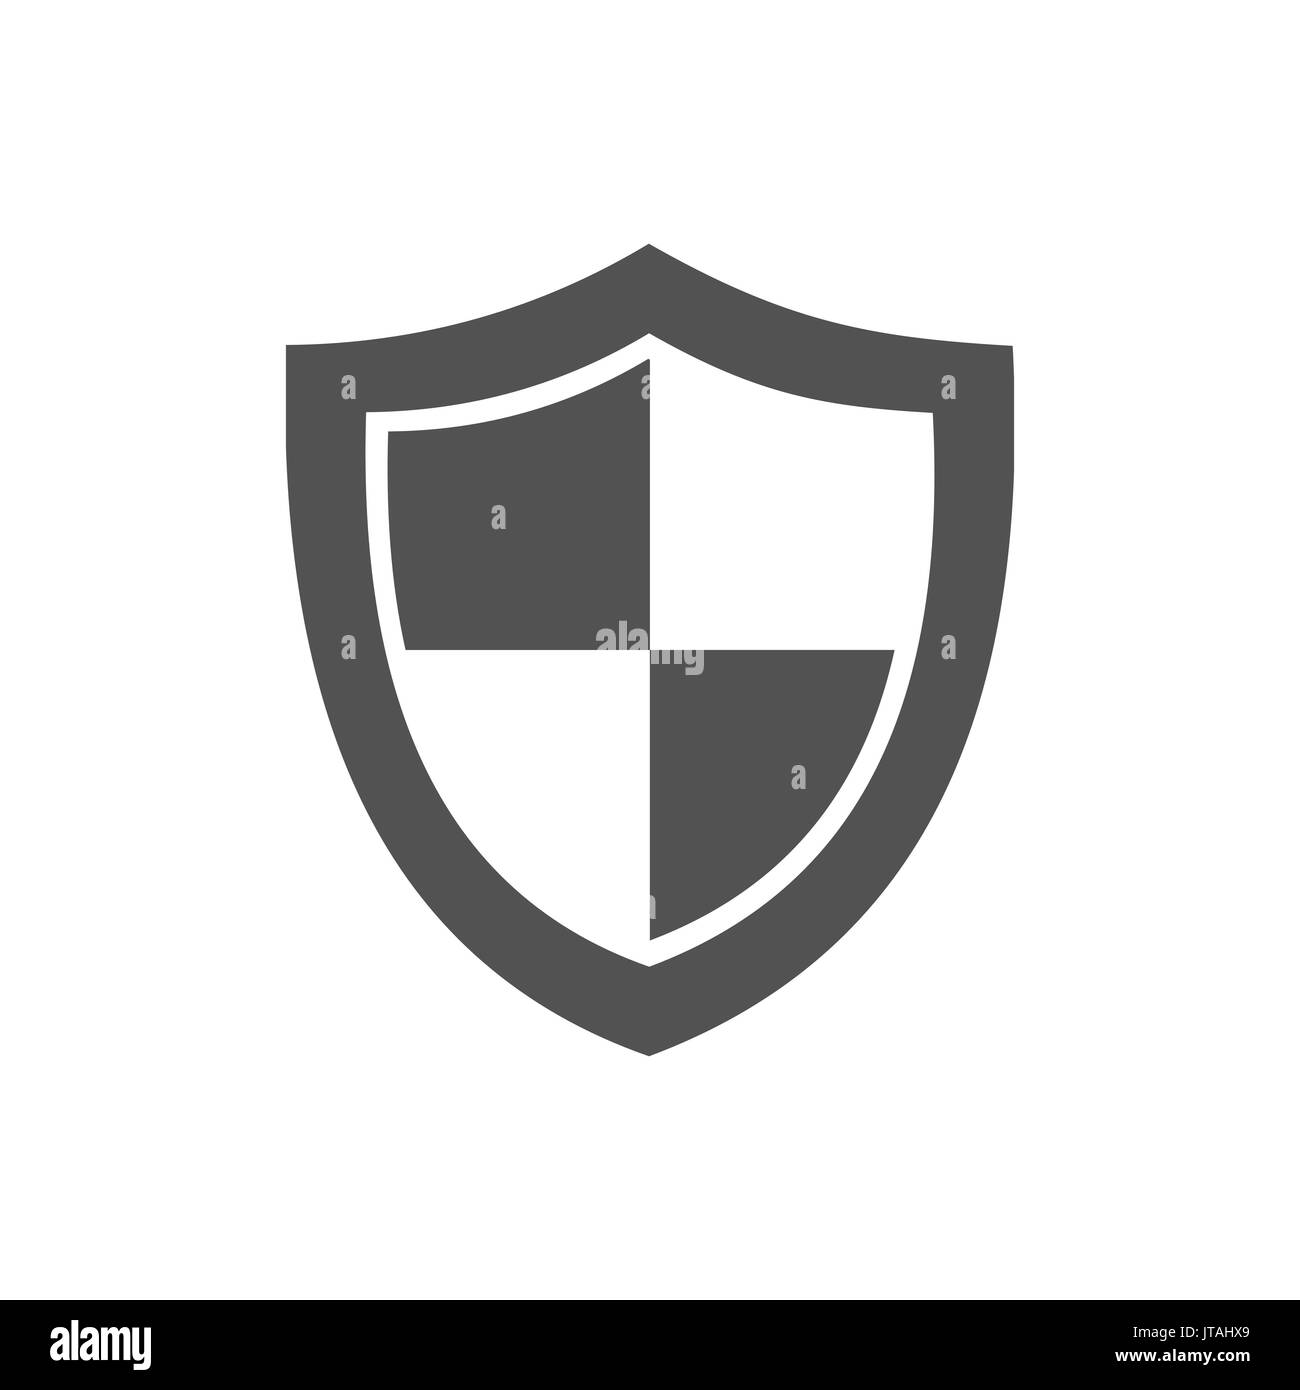 High security shield icon on a white background - Stock Image